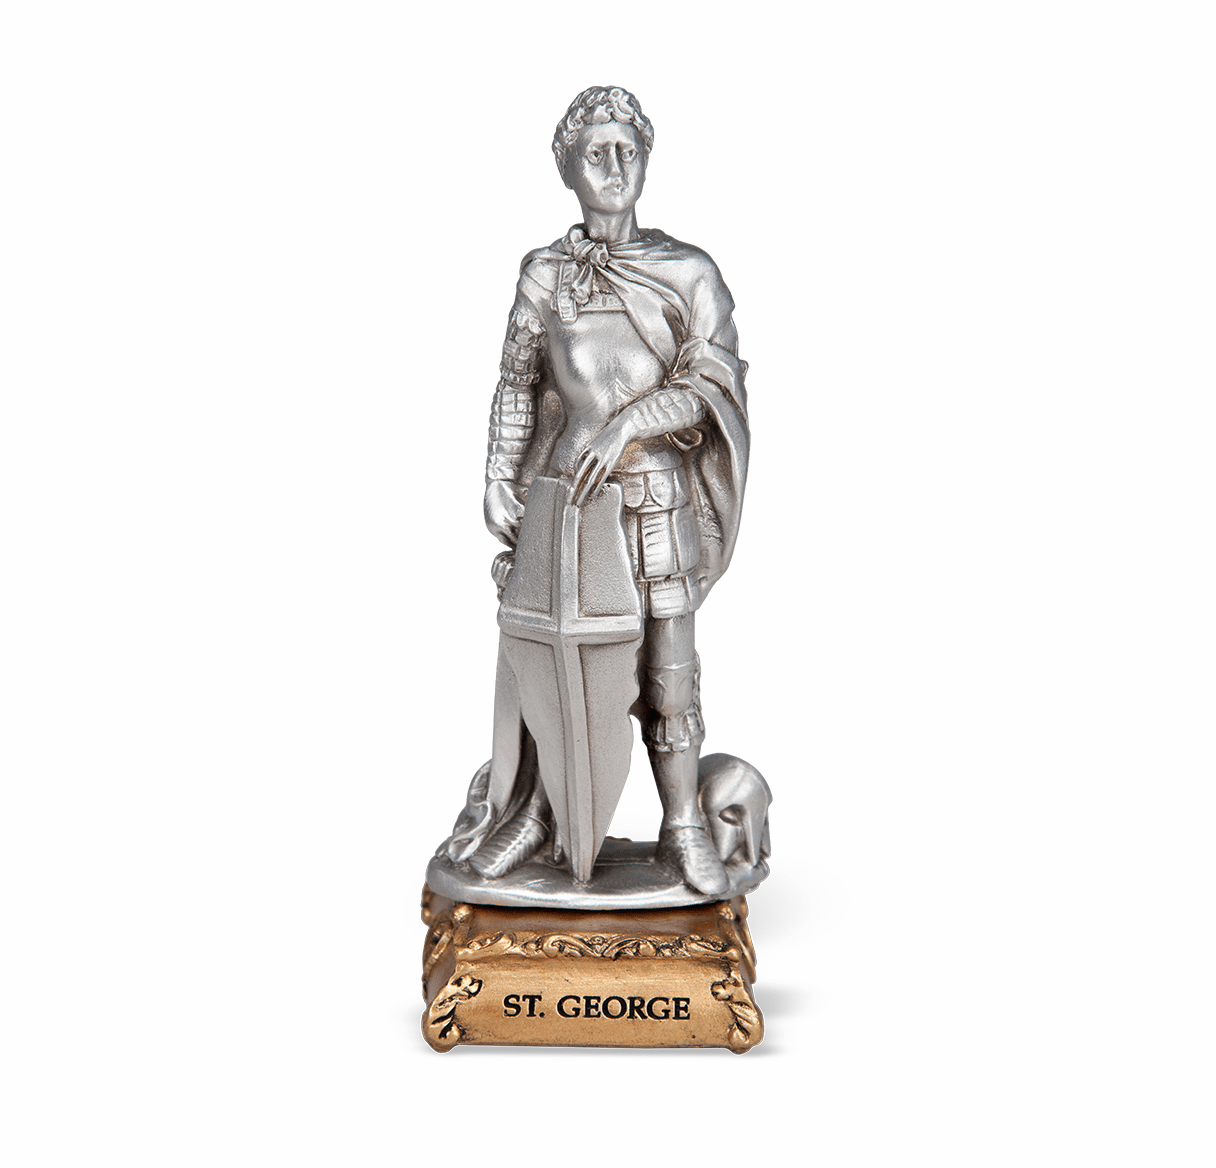 St George Patron Saint Pewter Statue on Gold Tone Base by Hirten